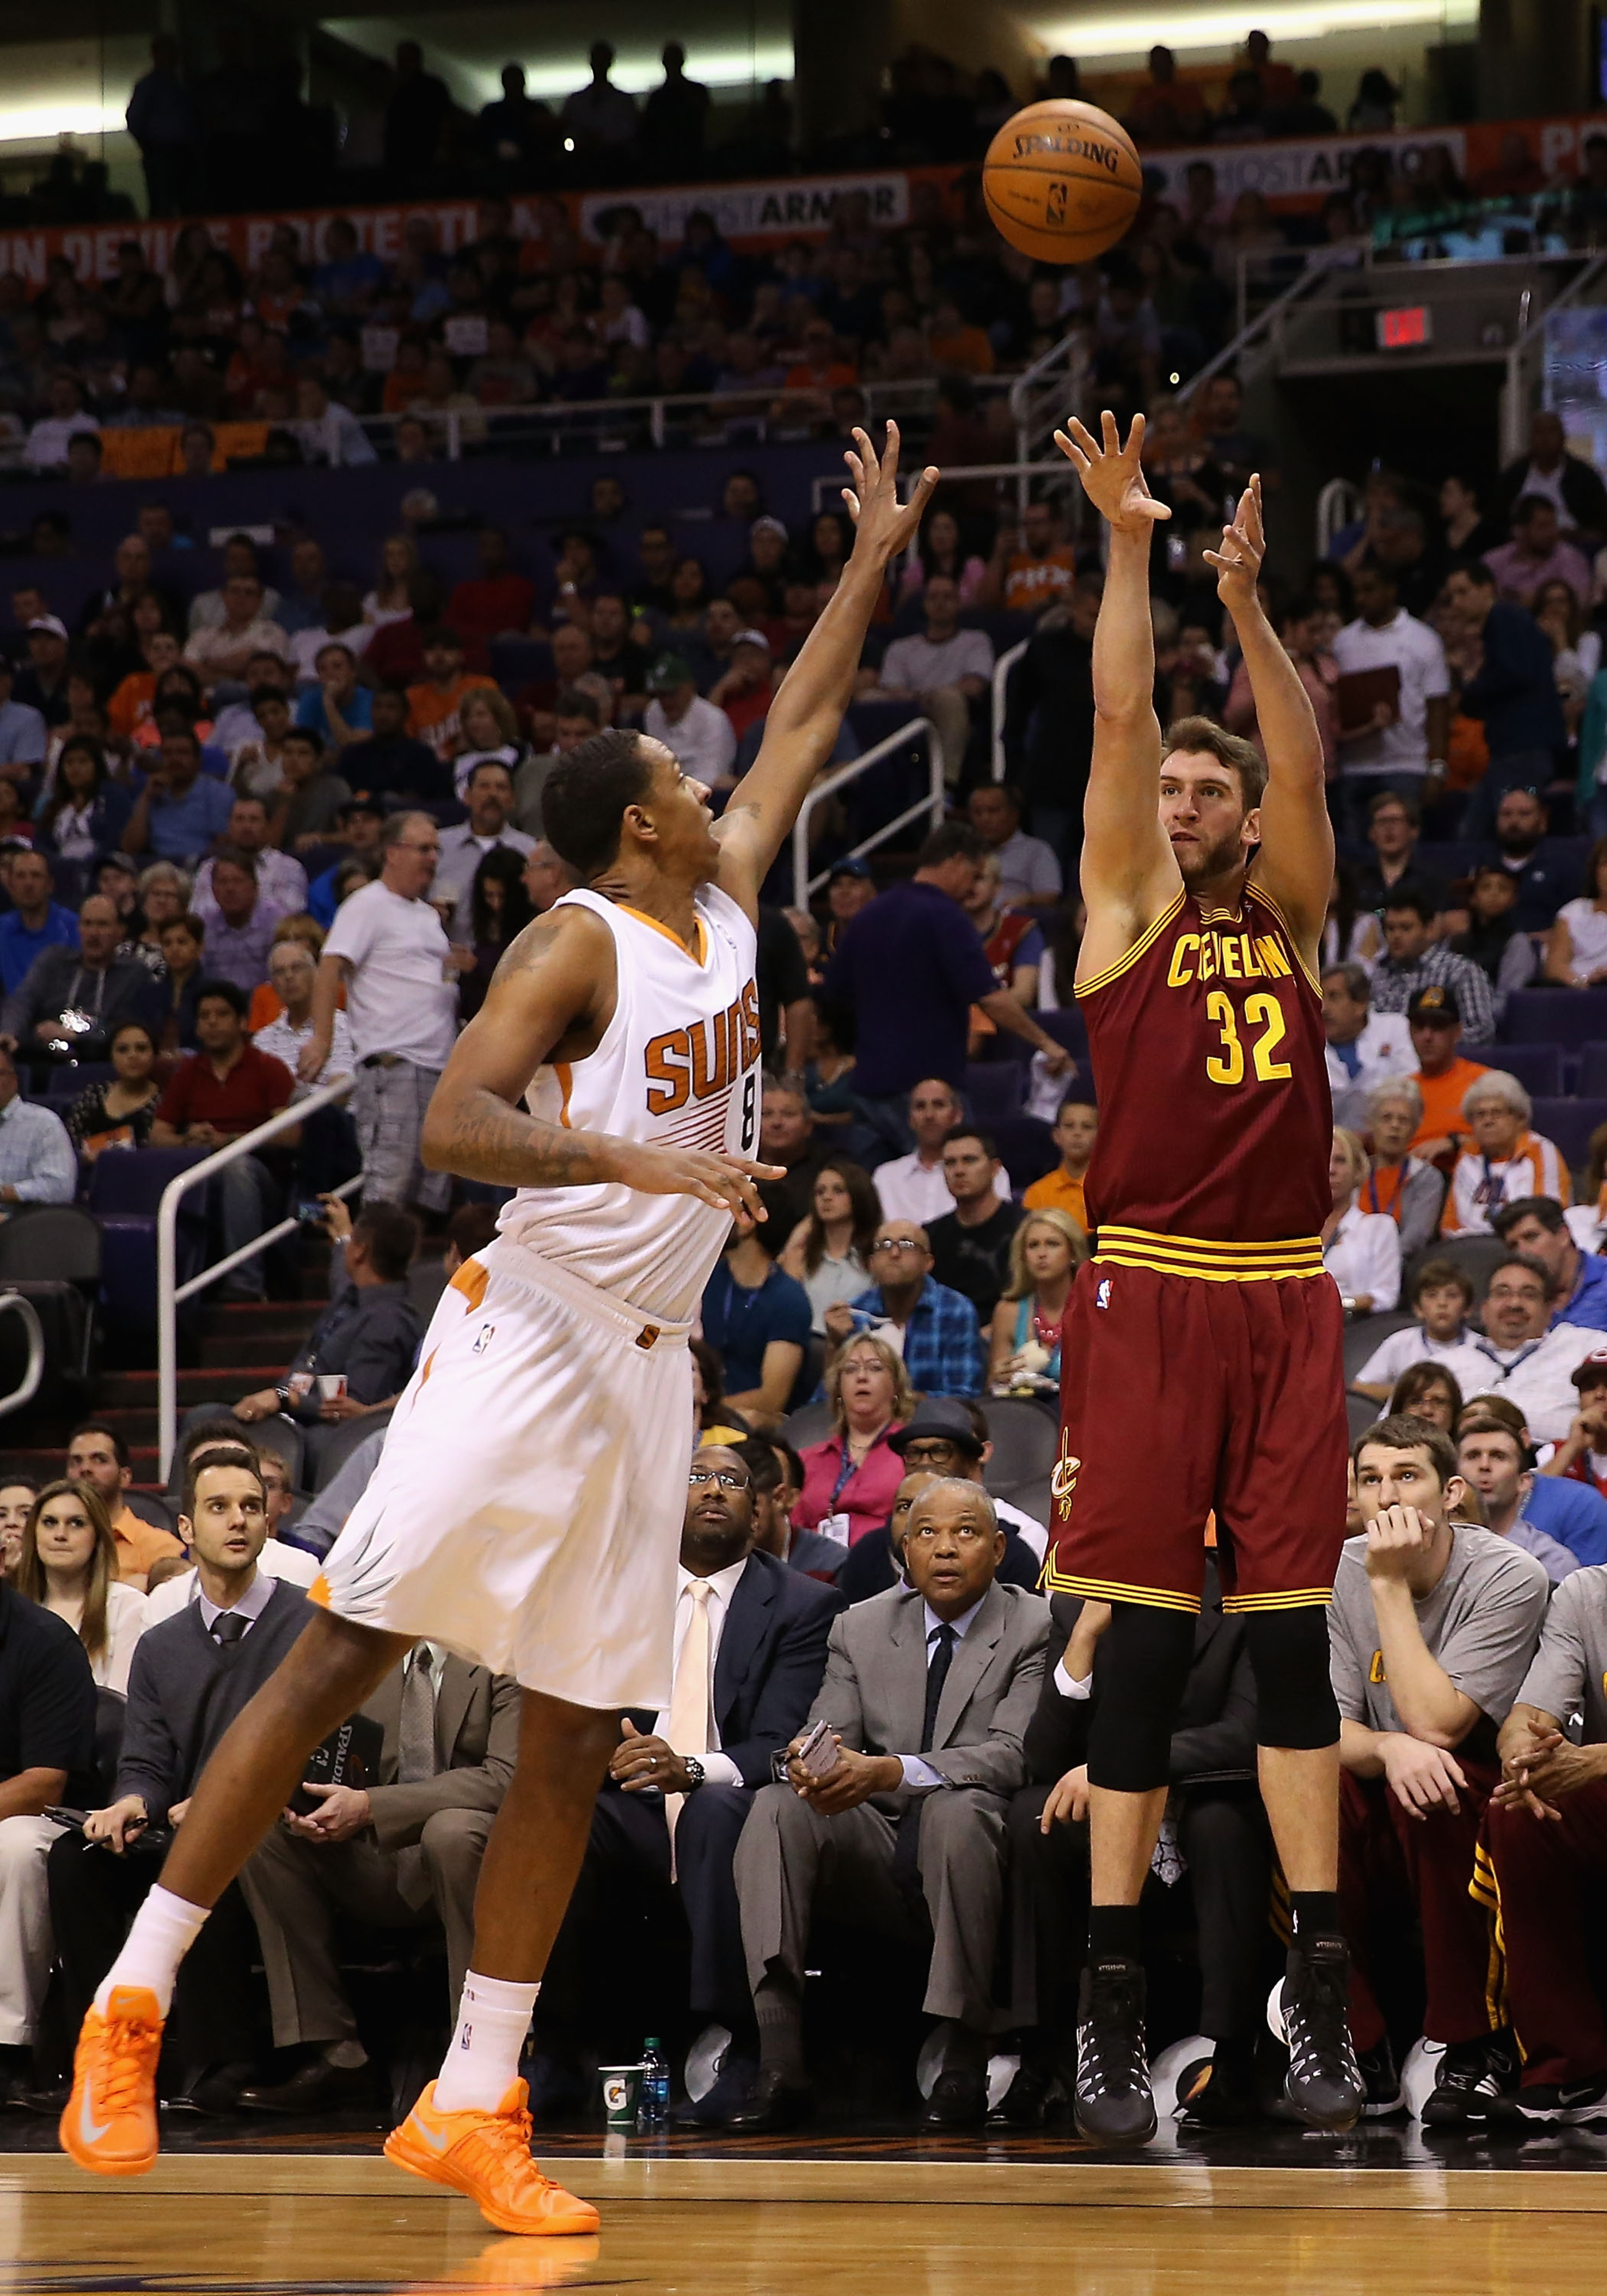 Like Channing Frye, Spencer Hawes is a stretch big but his passing ability distinguishes the two.